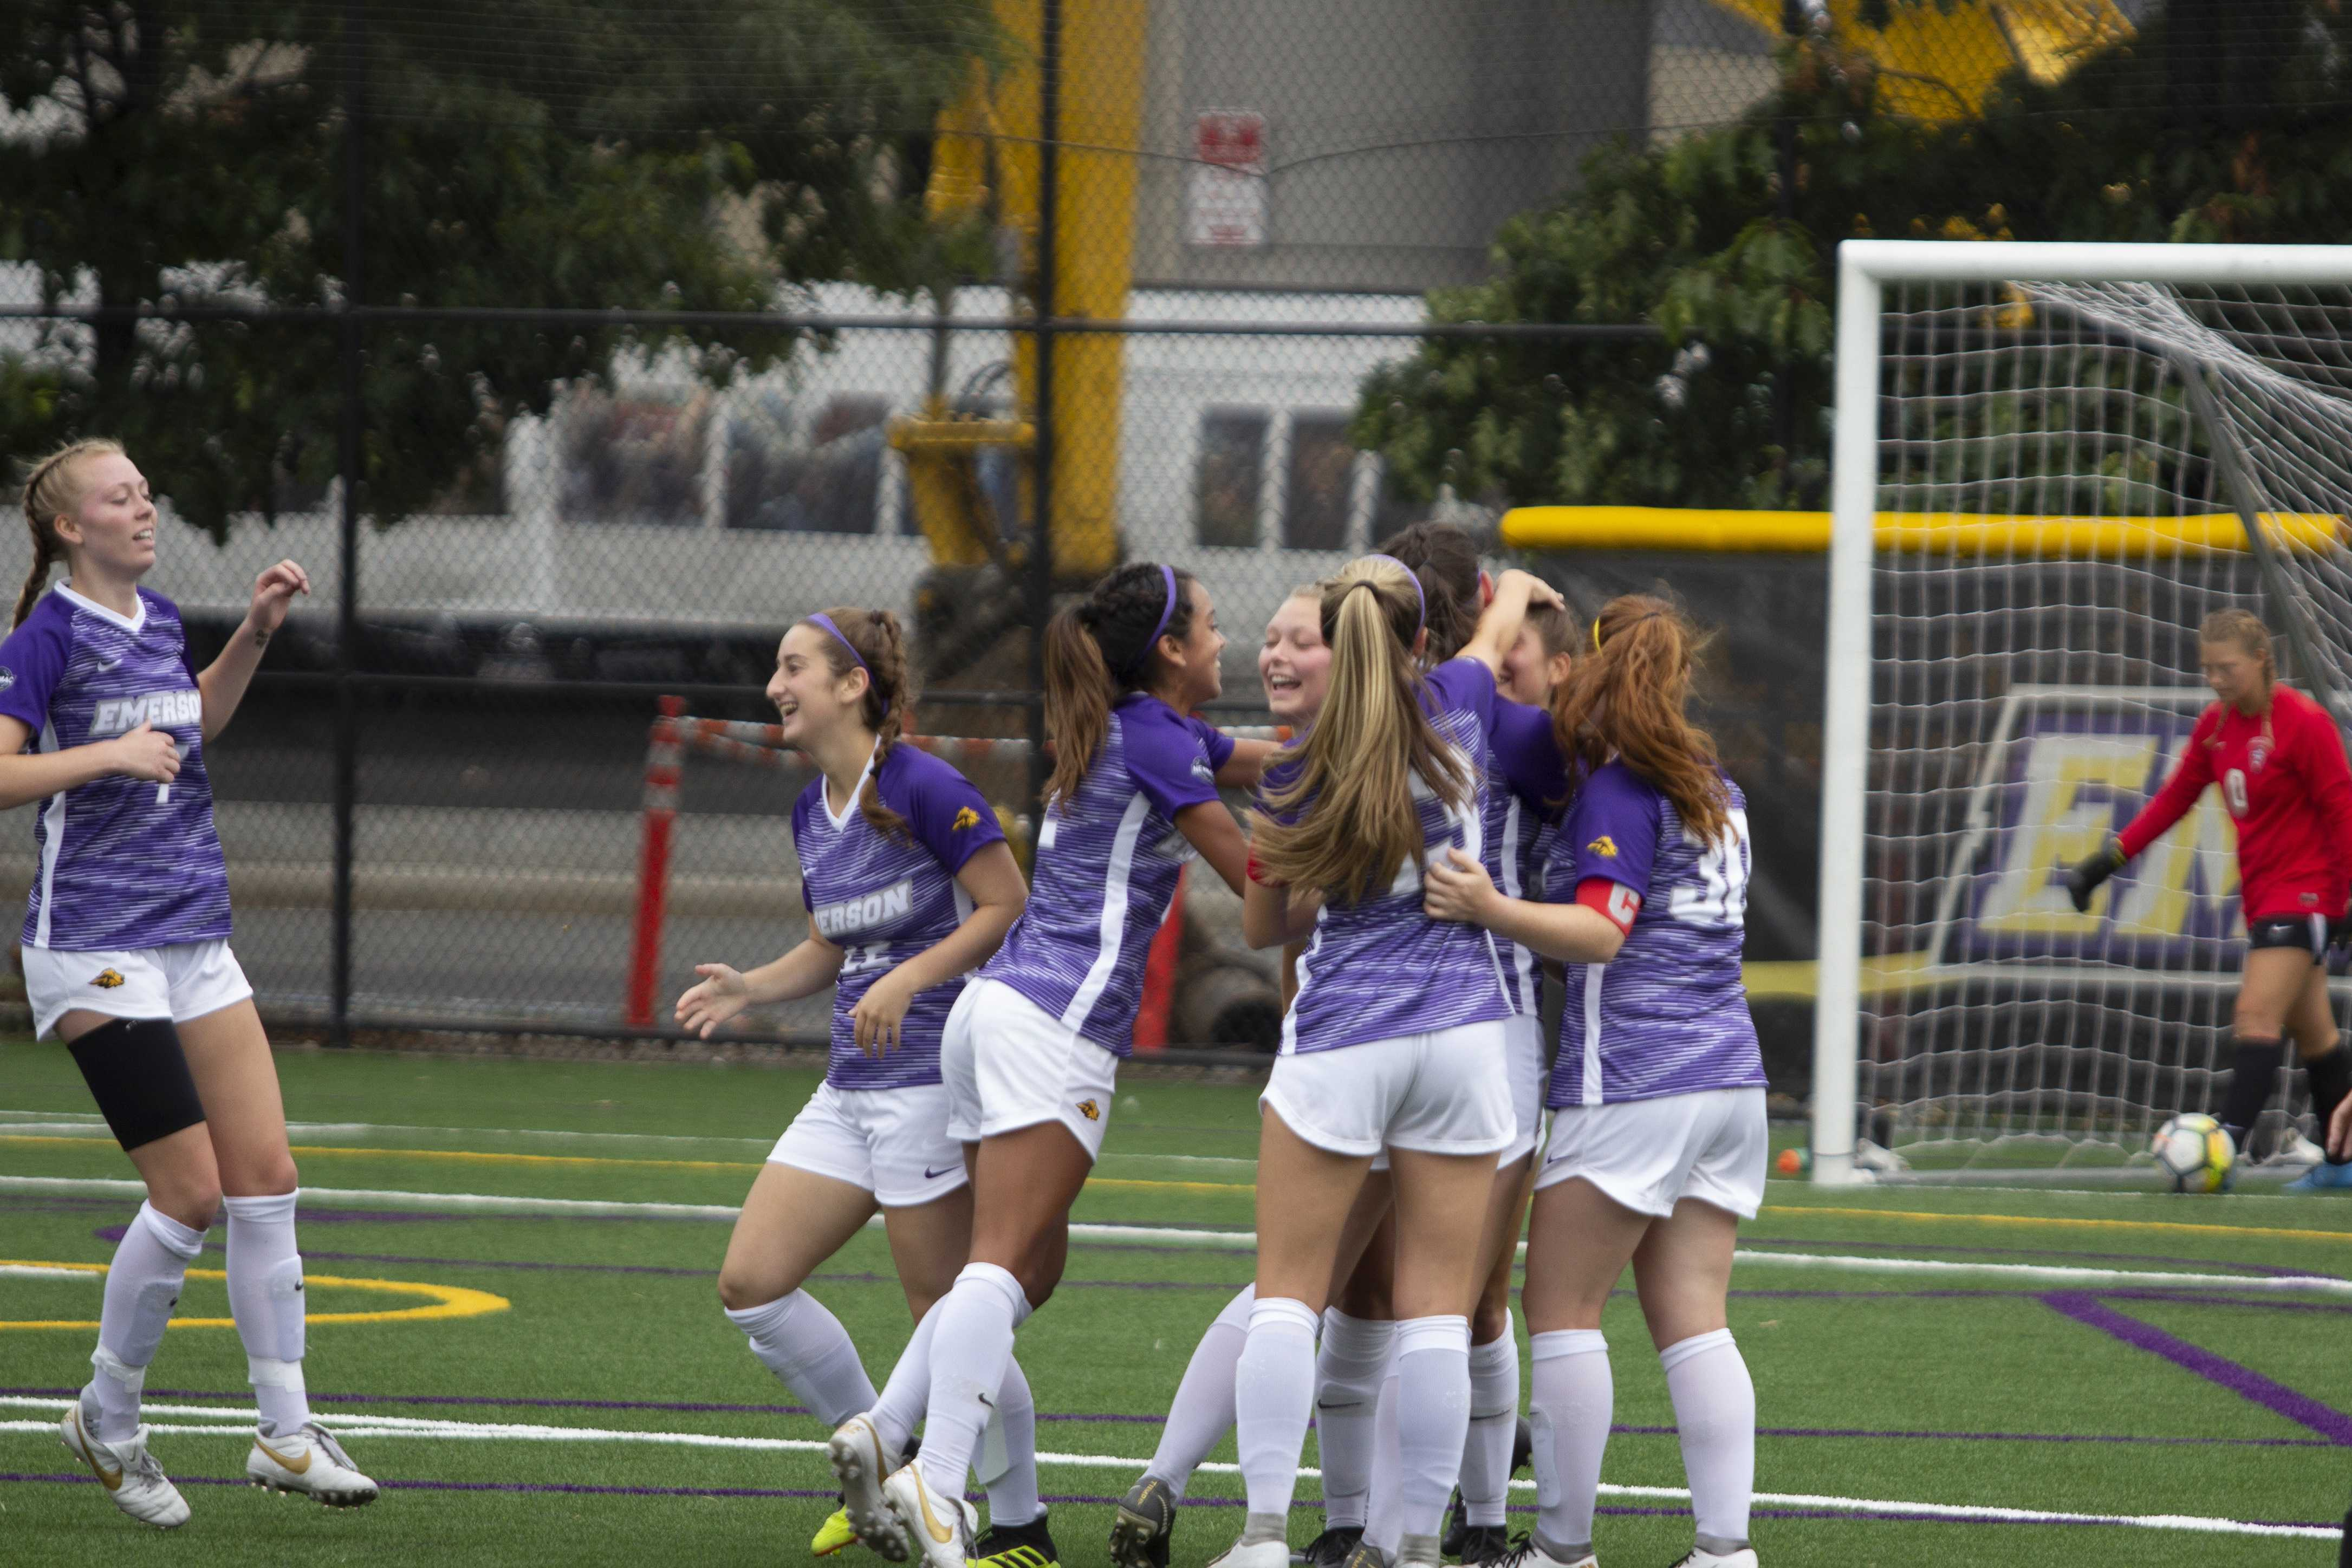 The women's soccer team defeated Babson 3-2 in its only game against the Beavers this season. Photo by Kyle Bray / Beacon Staff